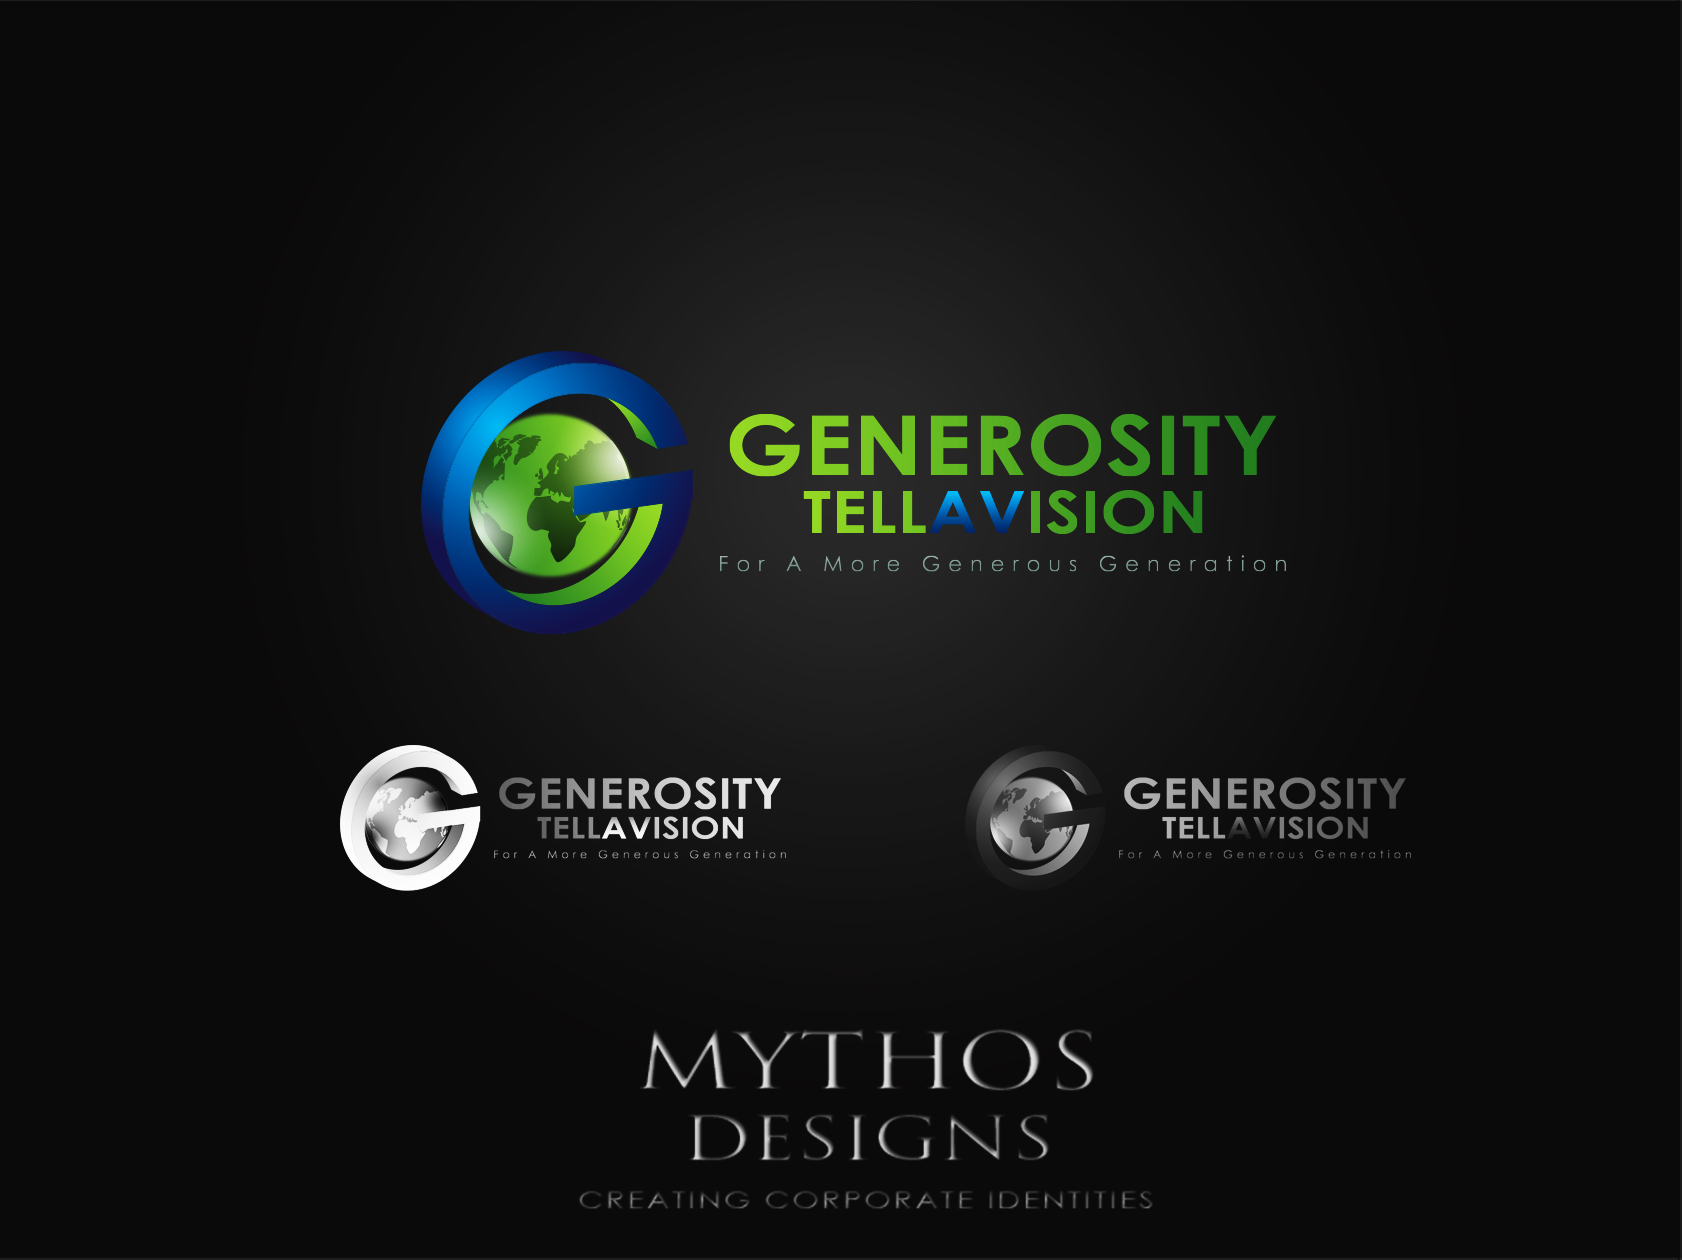 Logo Design by Mythos Designs - Entry No. 80 in the Logo Design Contest Artistic Logo Design for Generosity TellAVision.